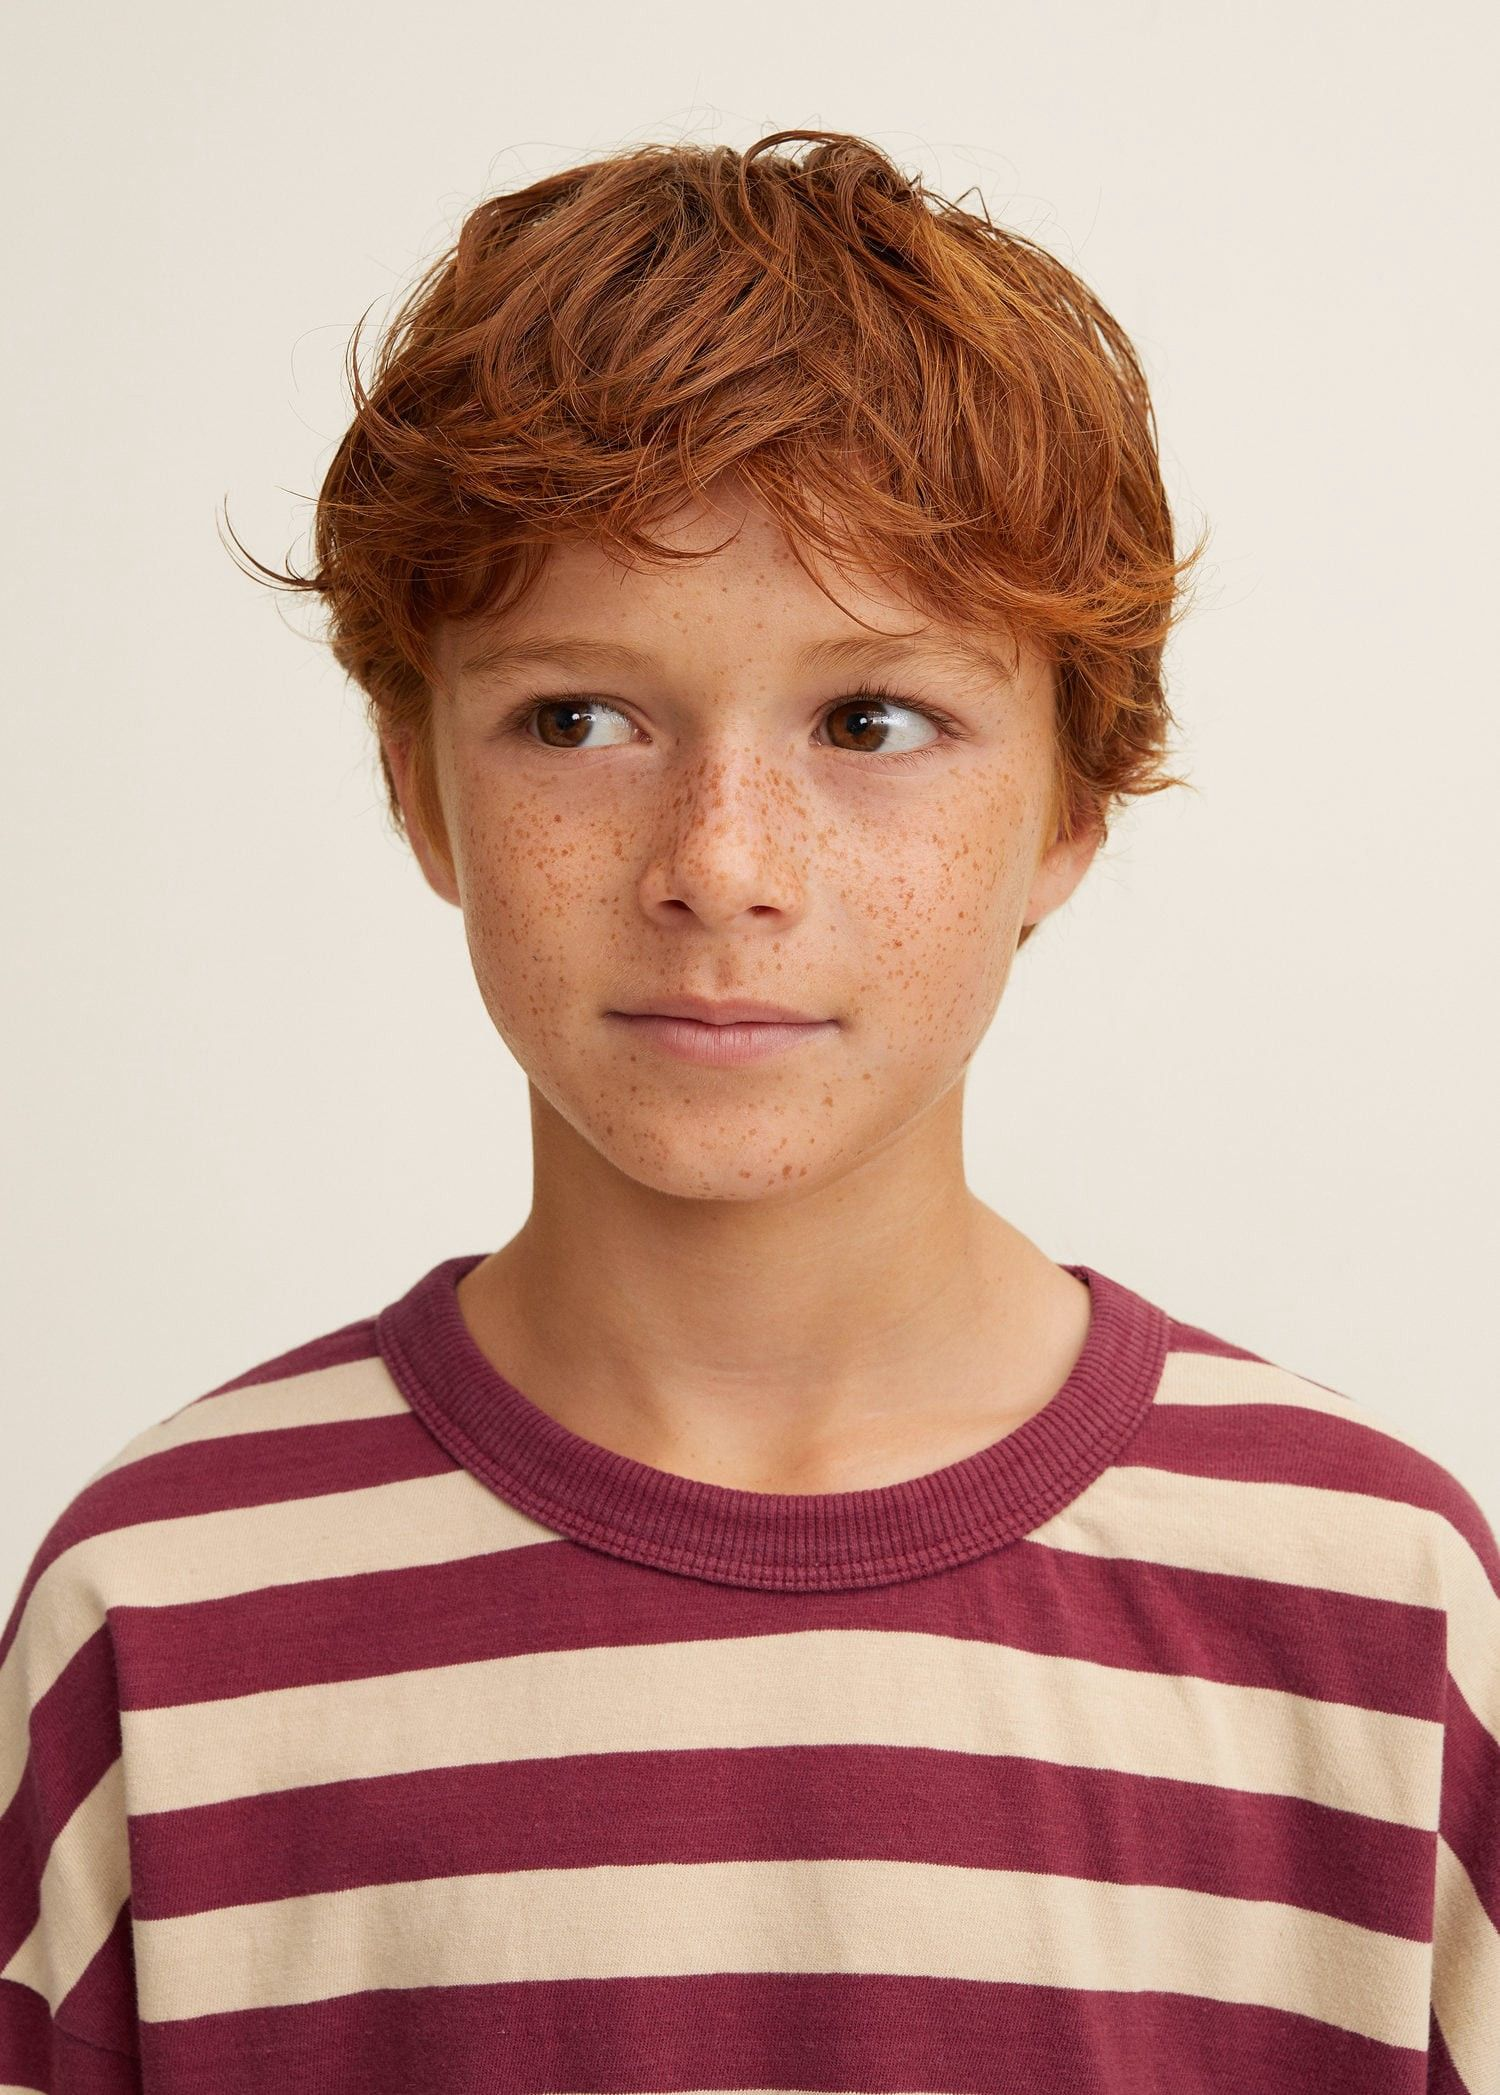 Mango Striped Cotton T Shirt Olive Green 13 14 Years 164cm Boy Hairstyles Young Cute Boys Ginger Men